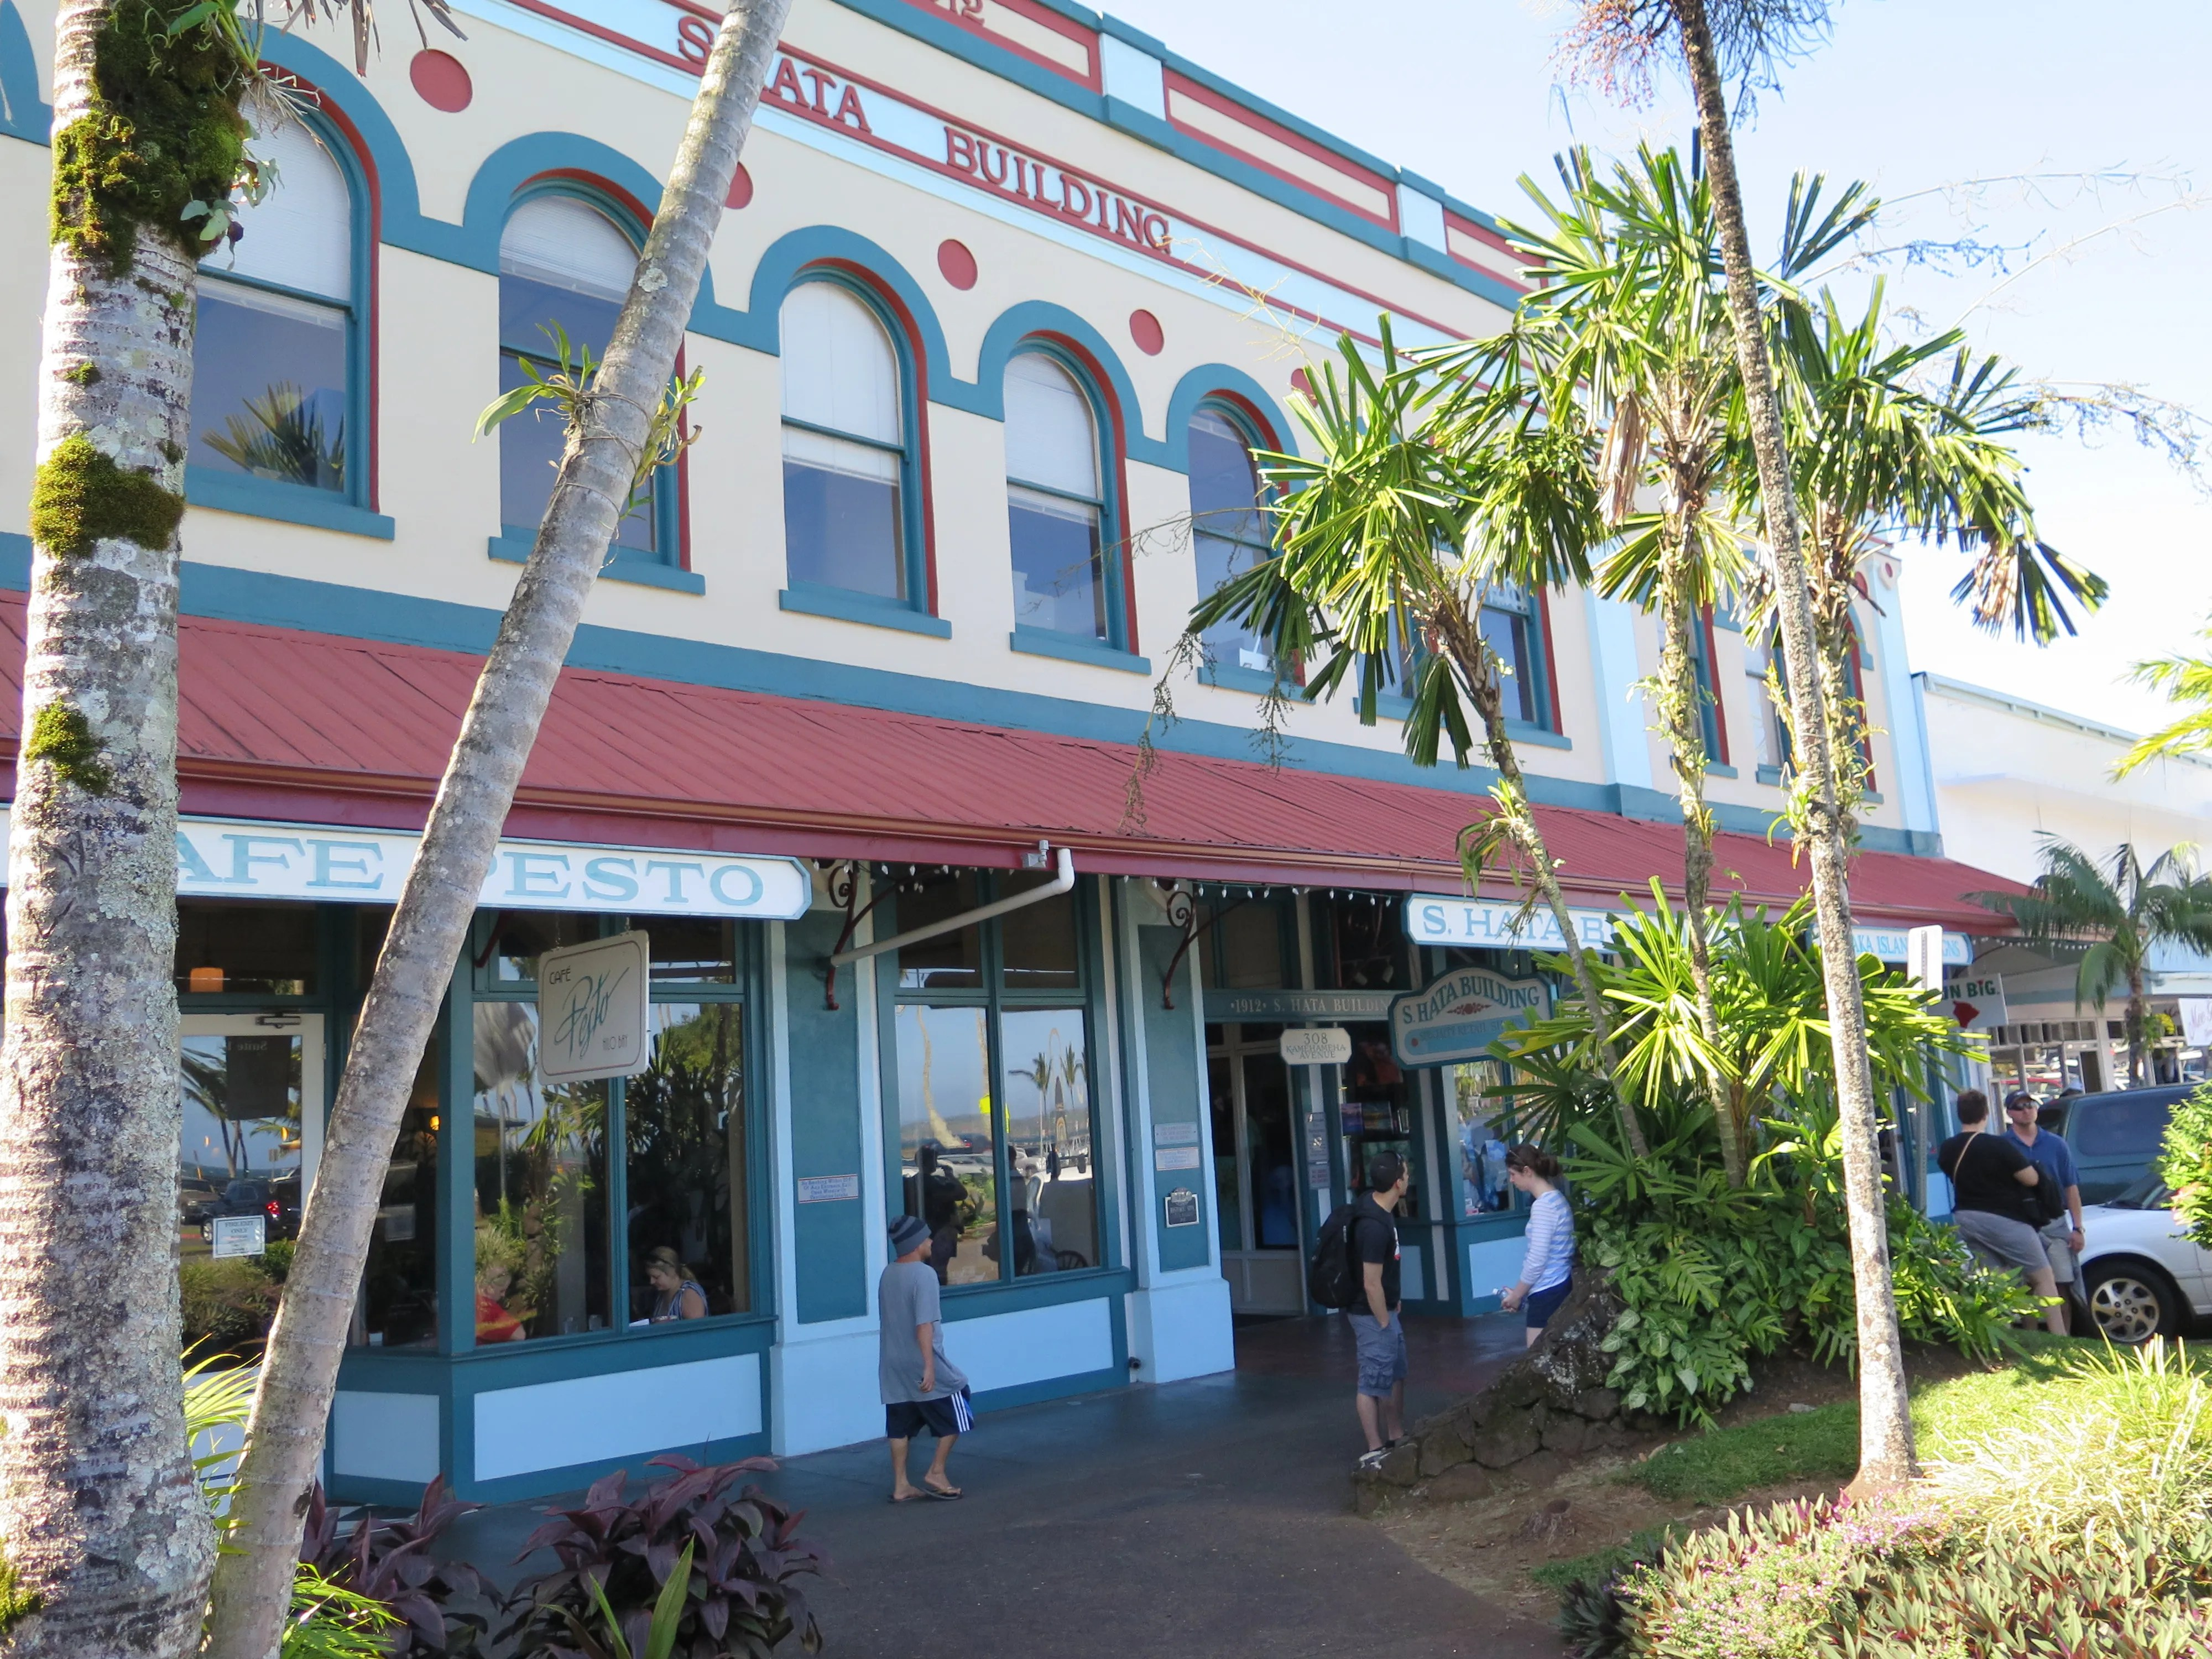 The city of Hilo features fun shops with an emphasis on local and environmentally friendly products.